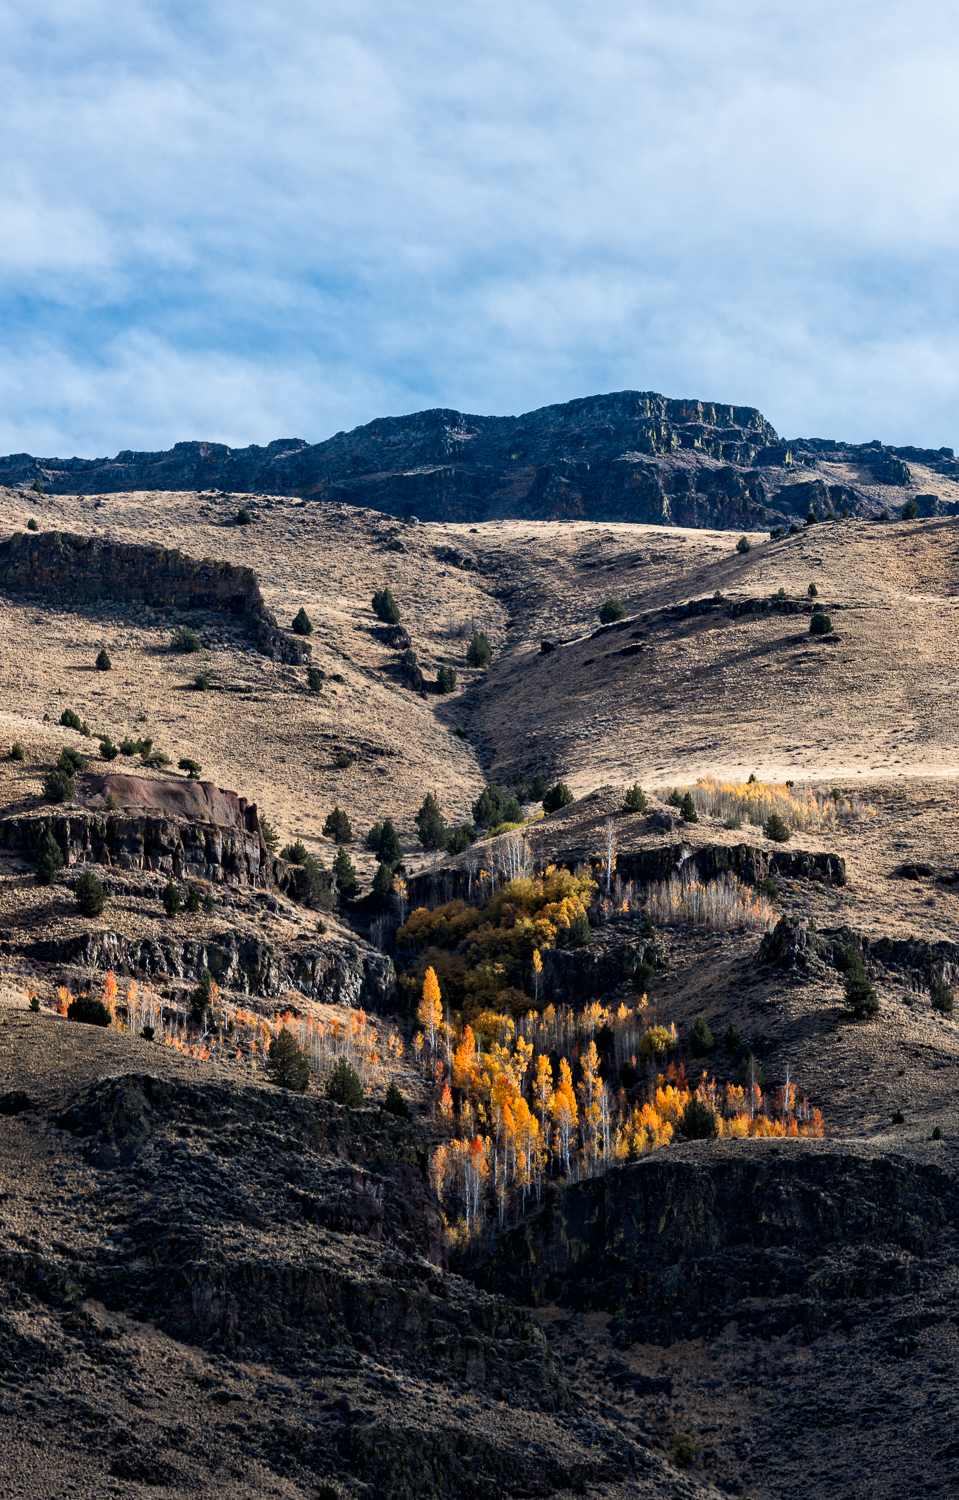 Fall Fire on Heart Mountain. Nikon D810 (Click Image to Enlarge)